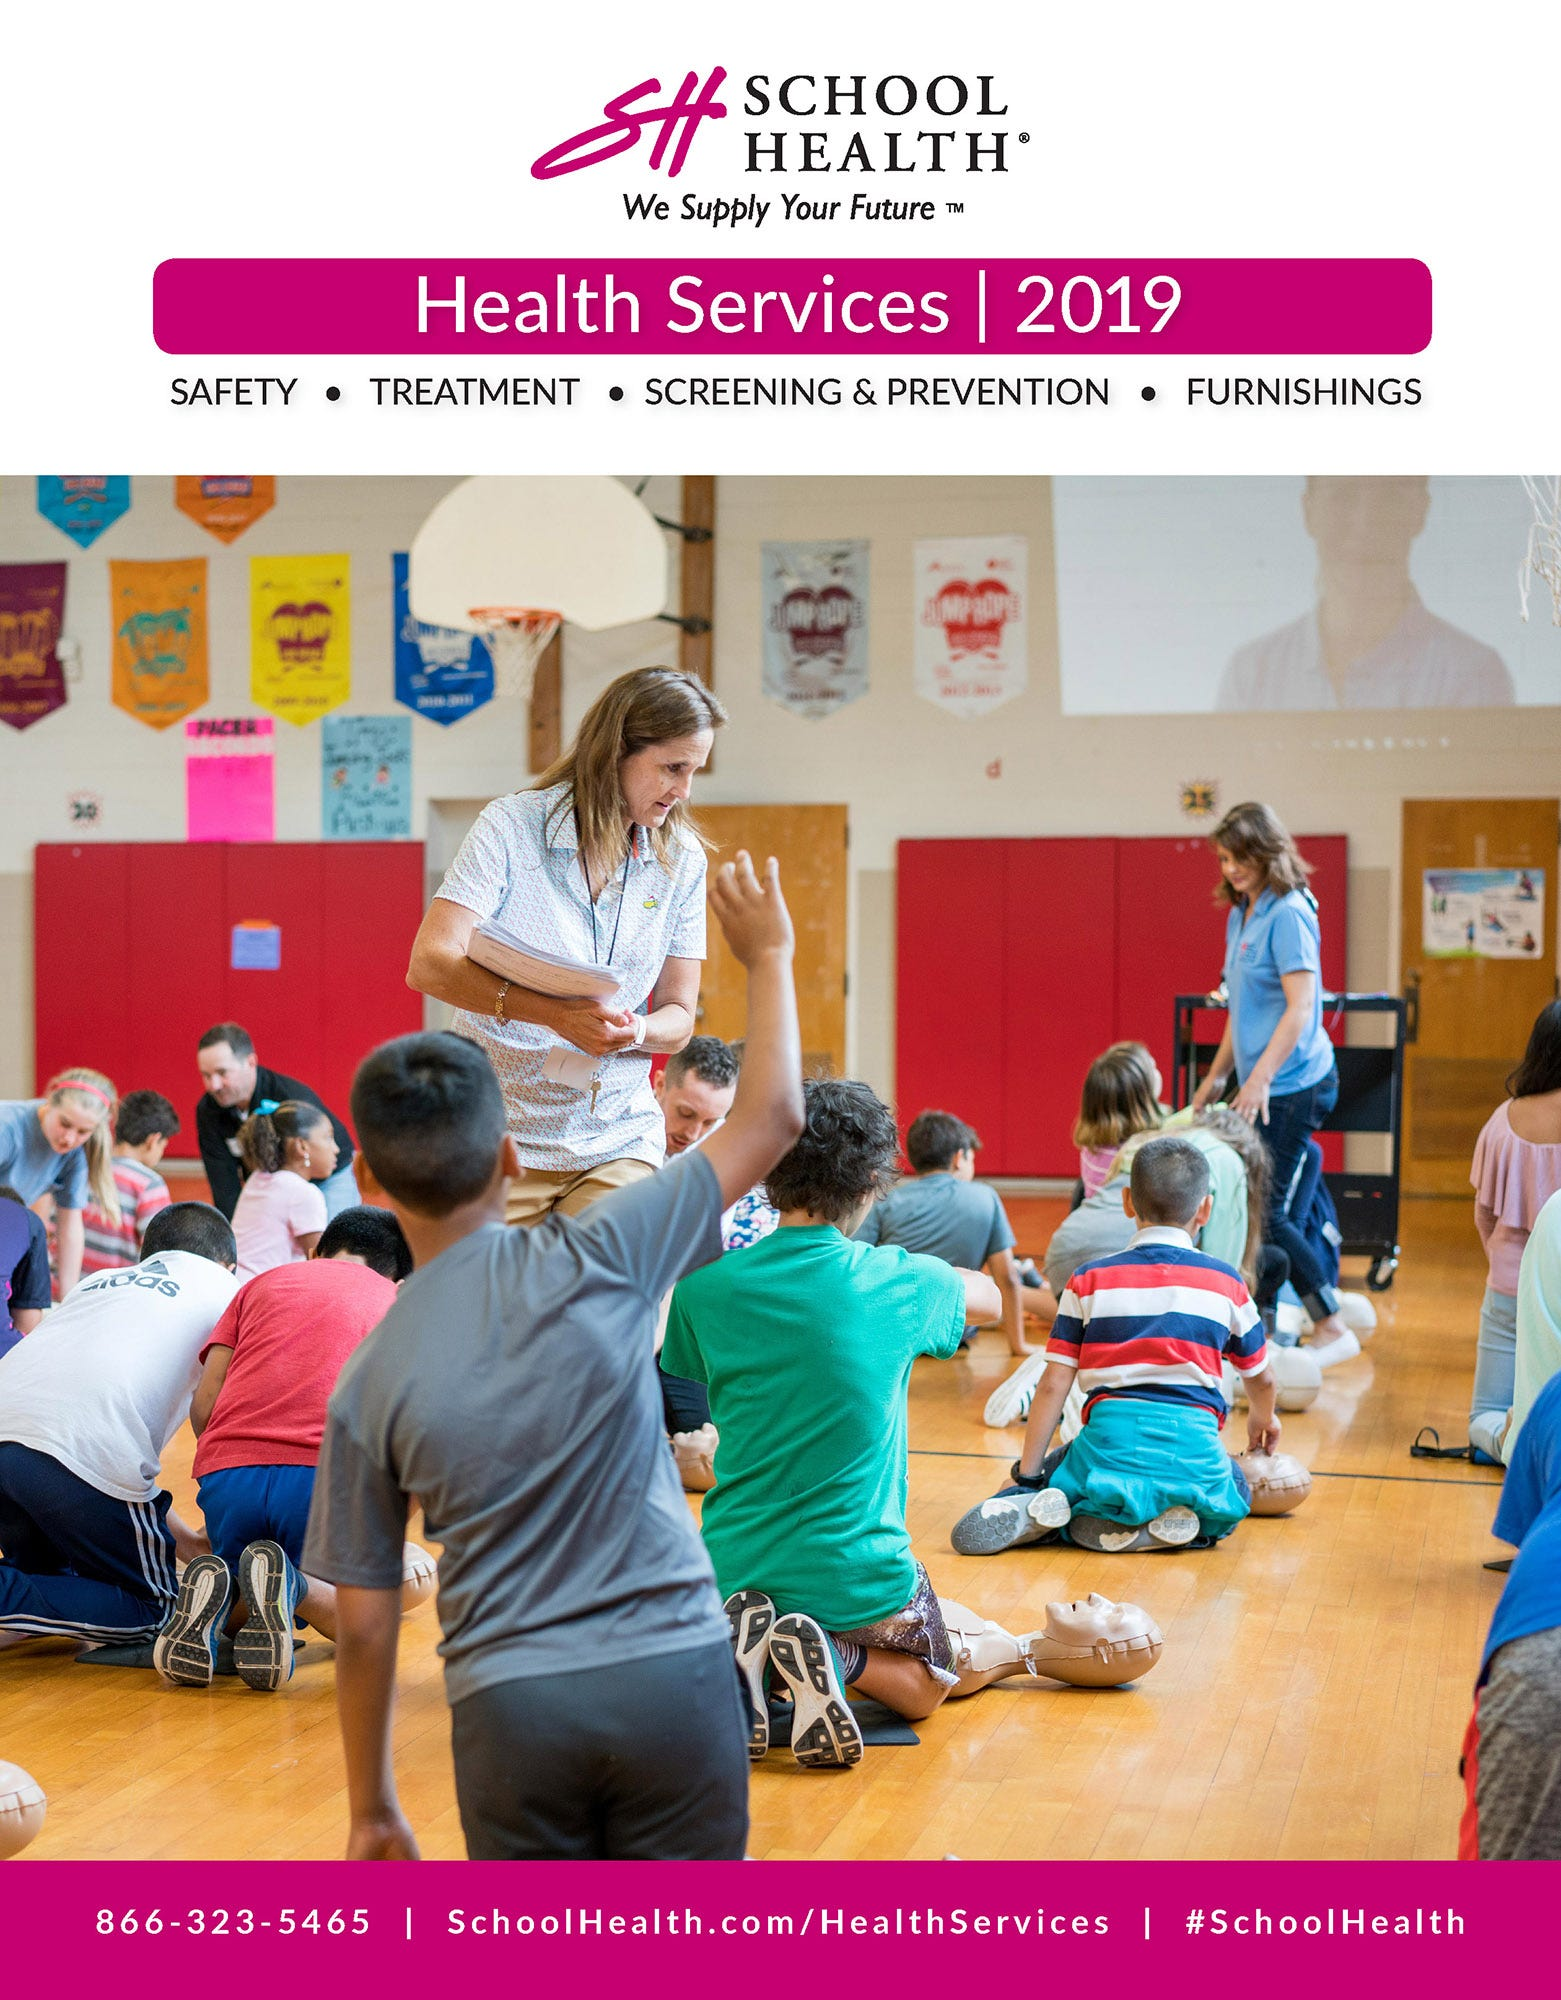 2019 Health Supplies Catalog